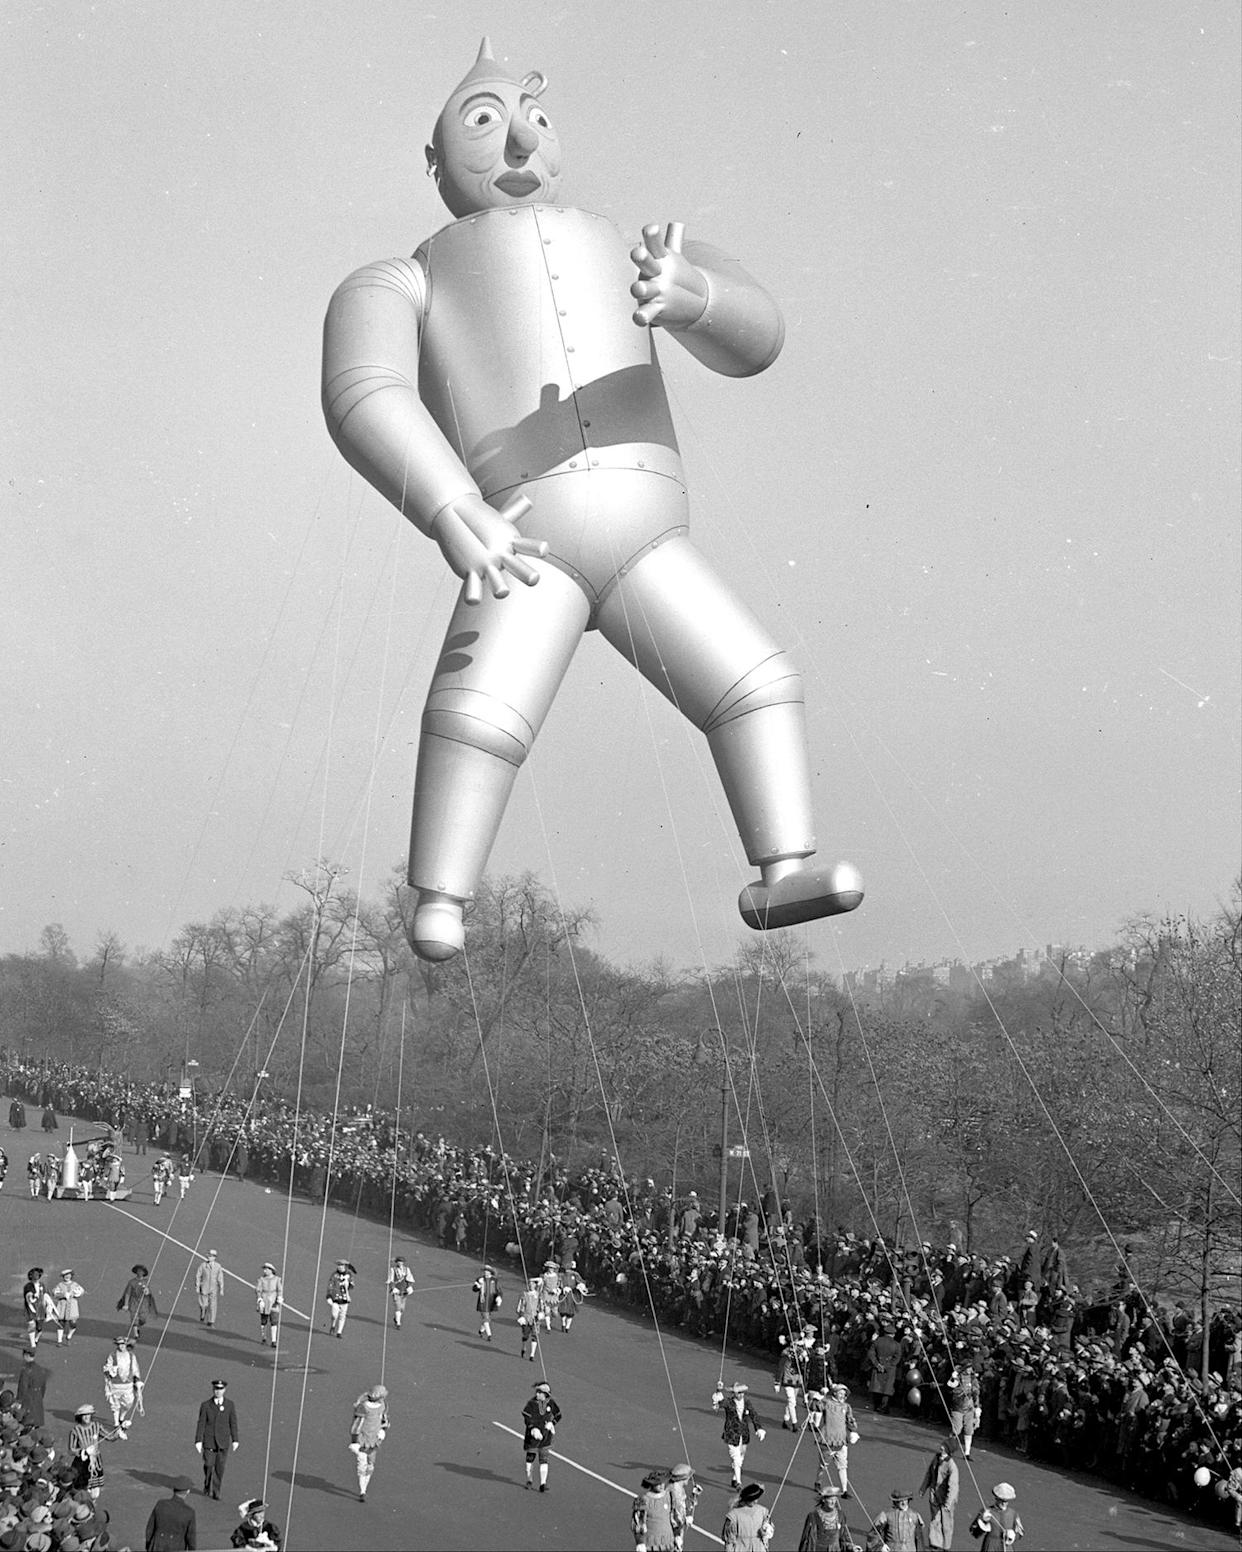 The Tin Man flies high in the Macy's Thanksgiving Day parade in 1939. (Photo: Joe Costa/New York Daily News Archive via Getty Images)